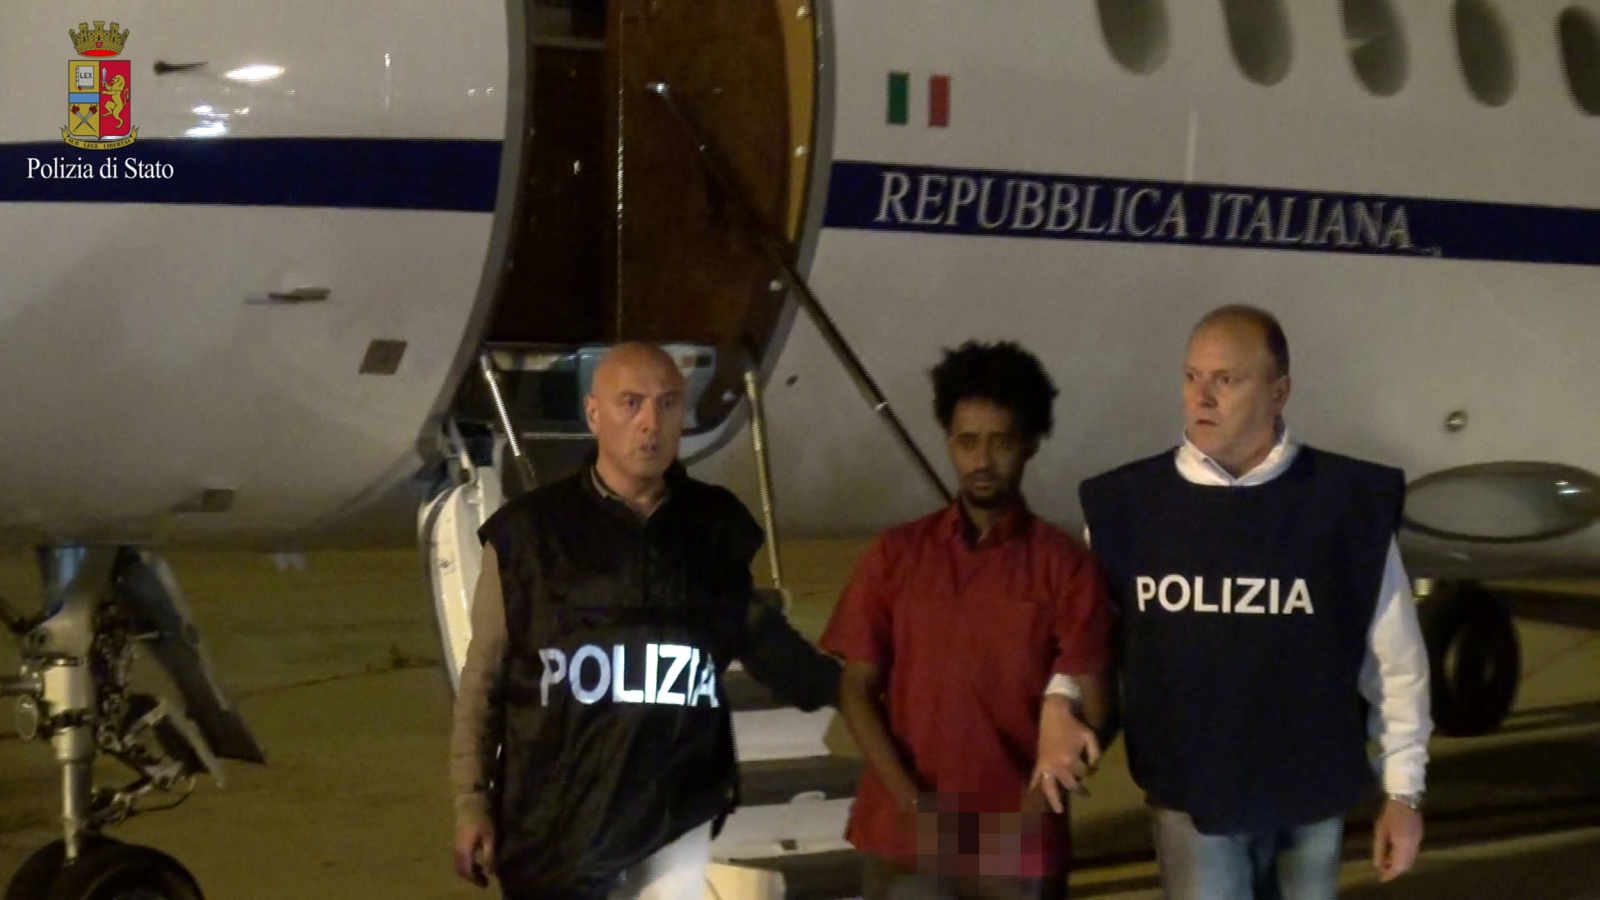 Suspect extradited to Italy from Sudan may be 'wrong man'